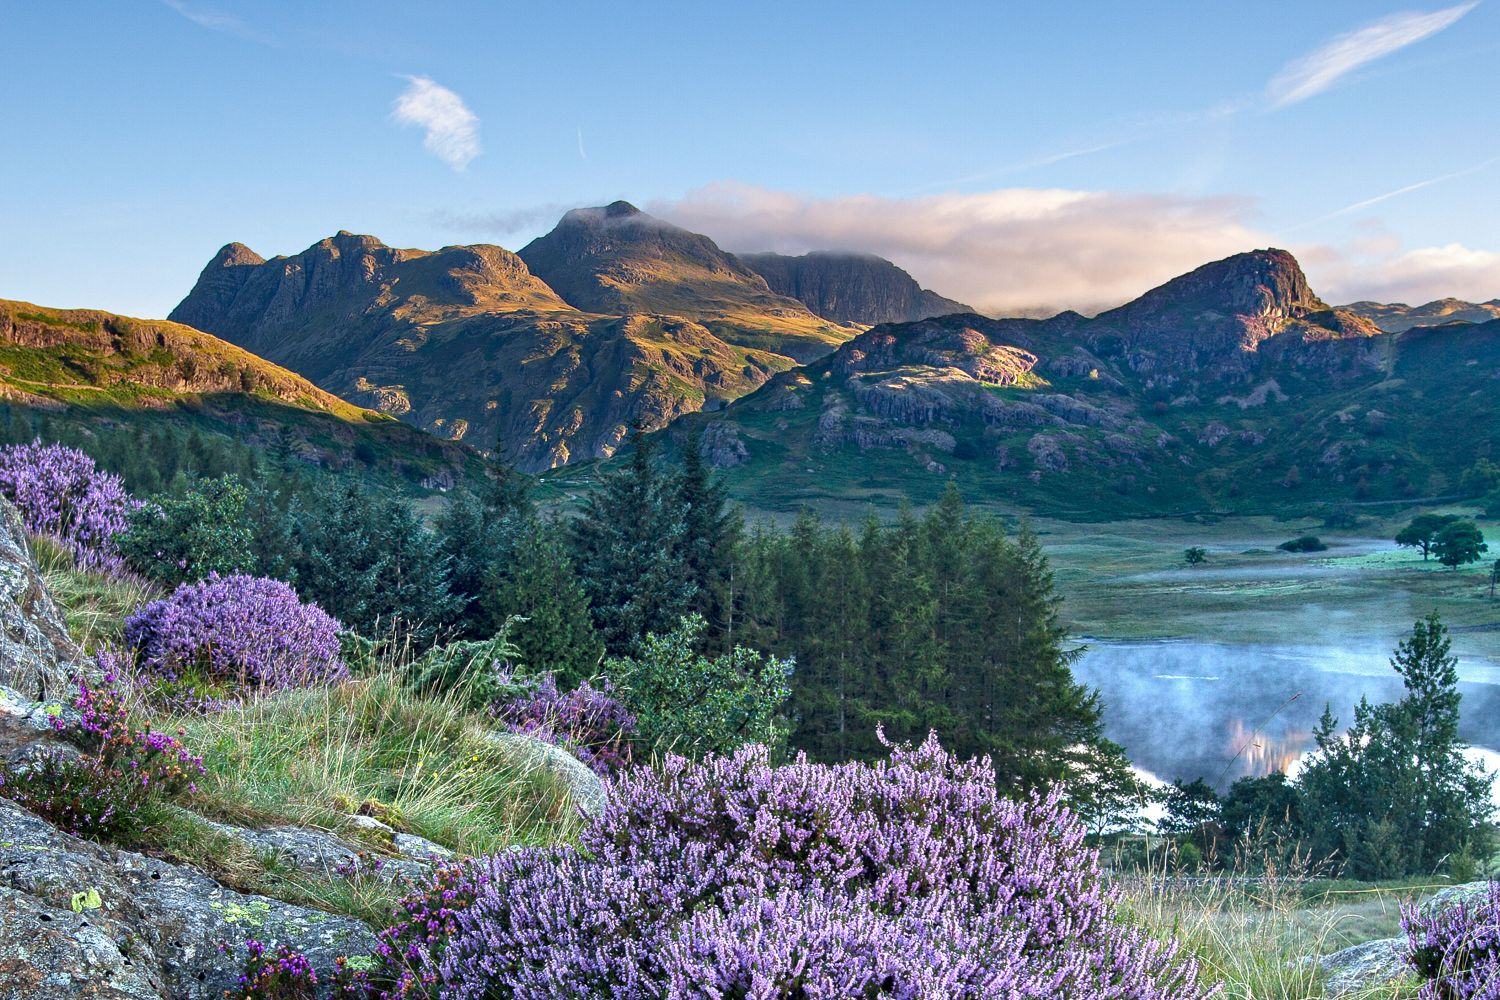 Heather surrounds a misty Blea Tarn and the Langdales